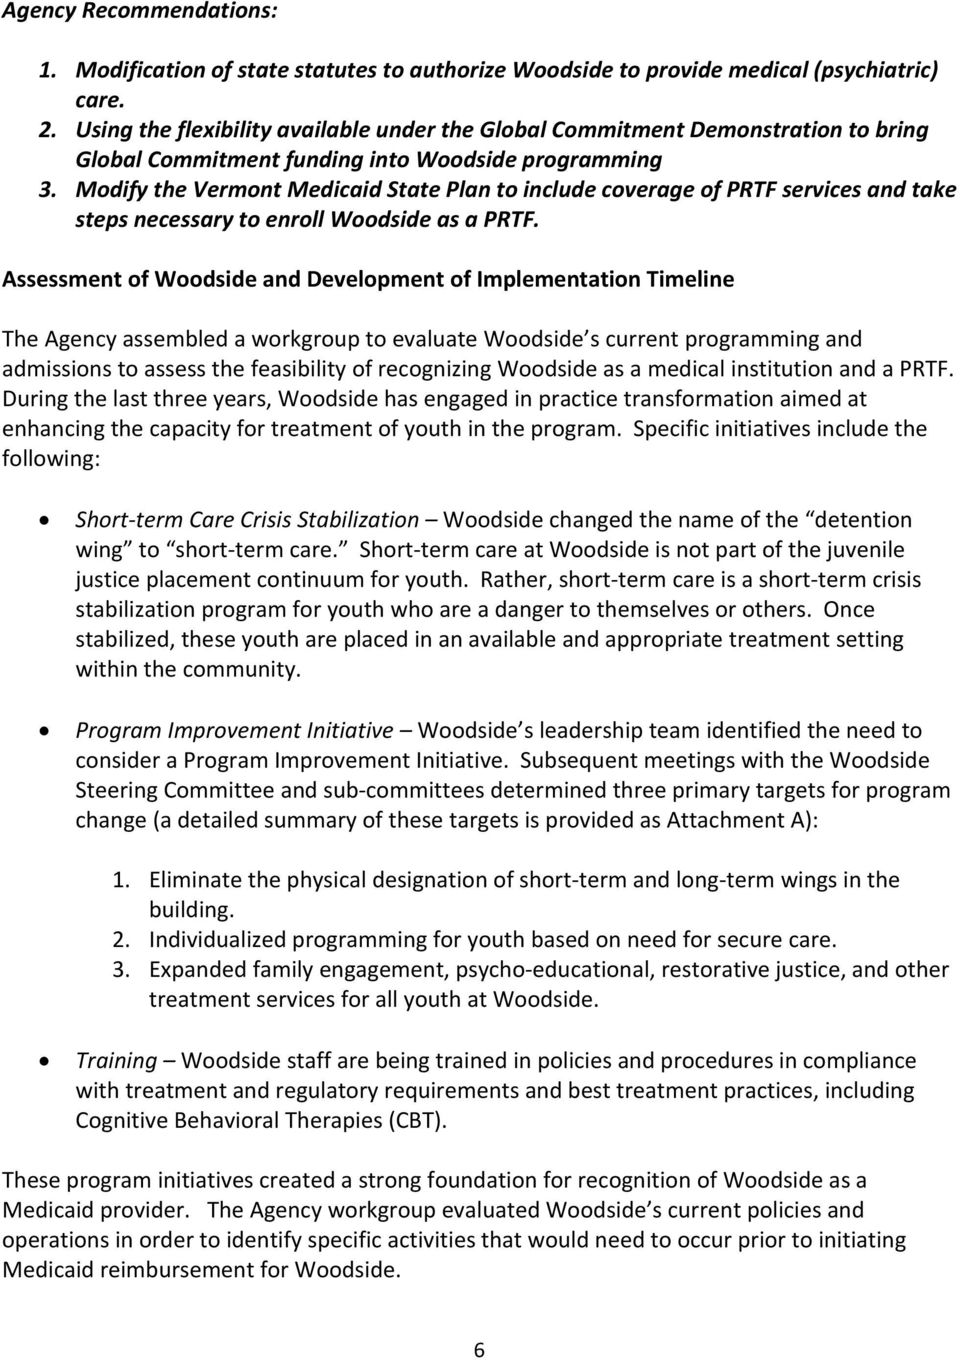 Modify the Vermont Medicaid State Plan to include coverage of PRTF services and take steps necessary to enroll Woodside as a PRTF.